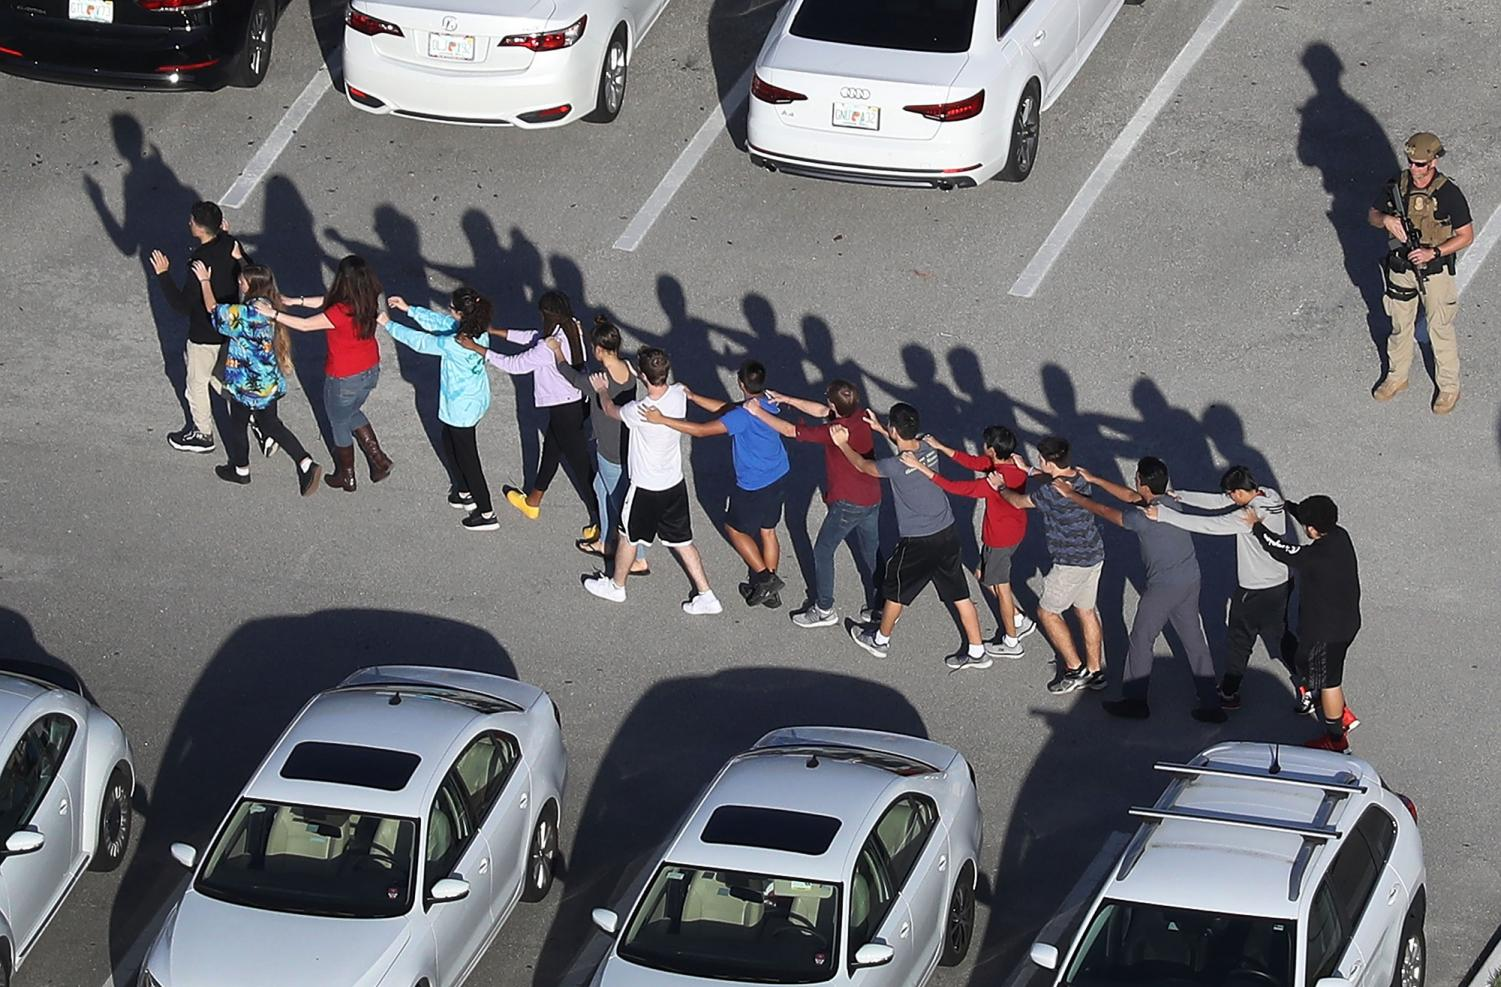 People are brought out of the Marjory Stoneman Douglas High School after a shooting at the school that reportedly killed and injured multiple people on February 14, 2018 in Parkland, Florida. Numerous law enforcement officials continue to investigate the scene.